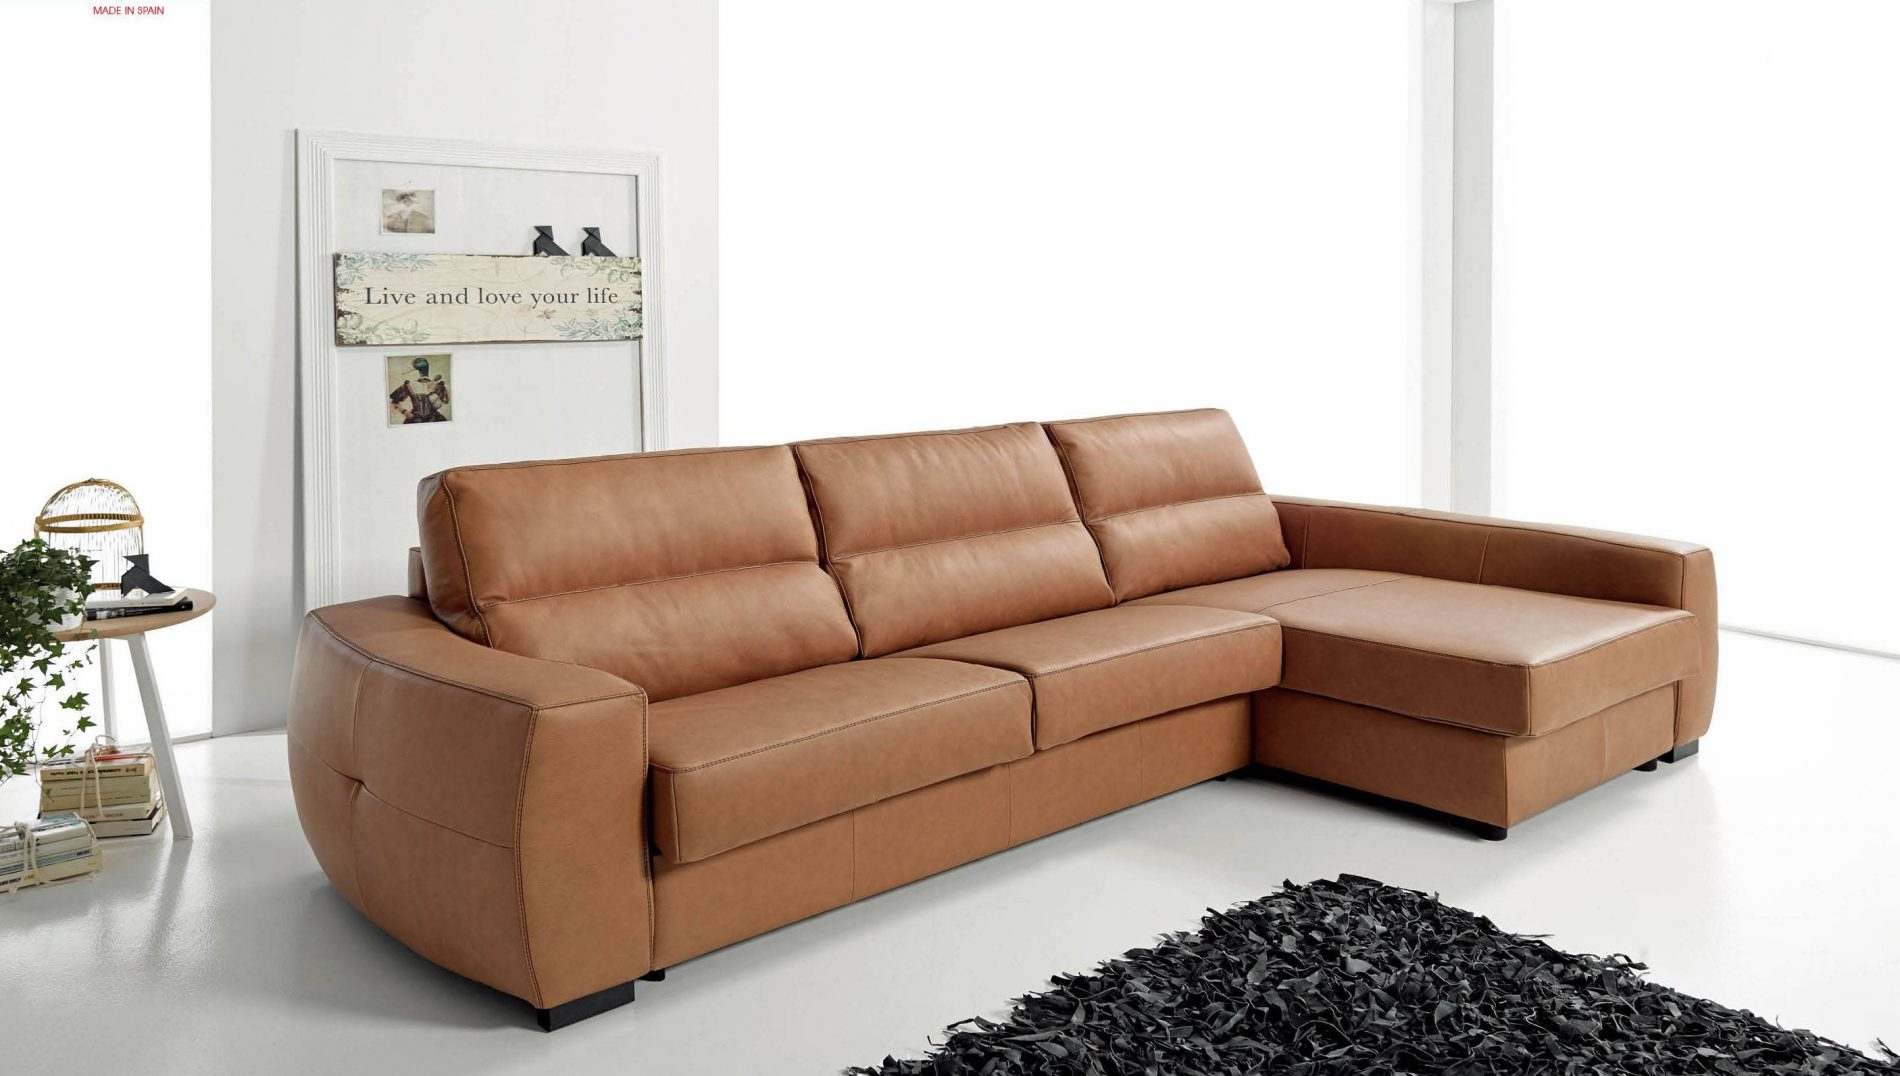 Cleaning Leather Furniture, Might Be Easier Than You Think